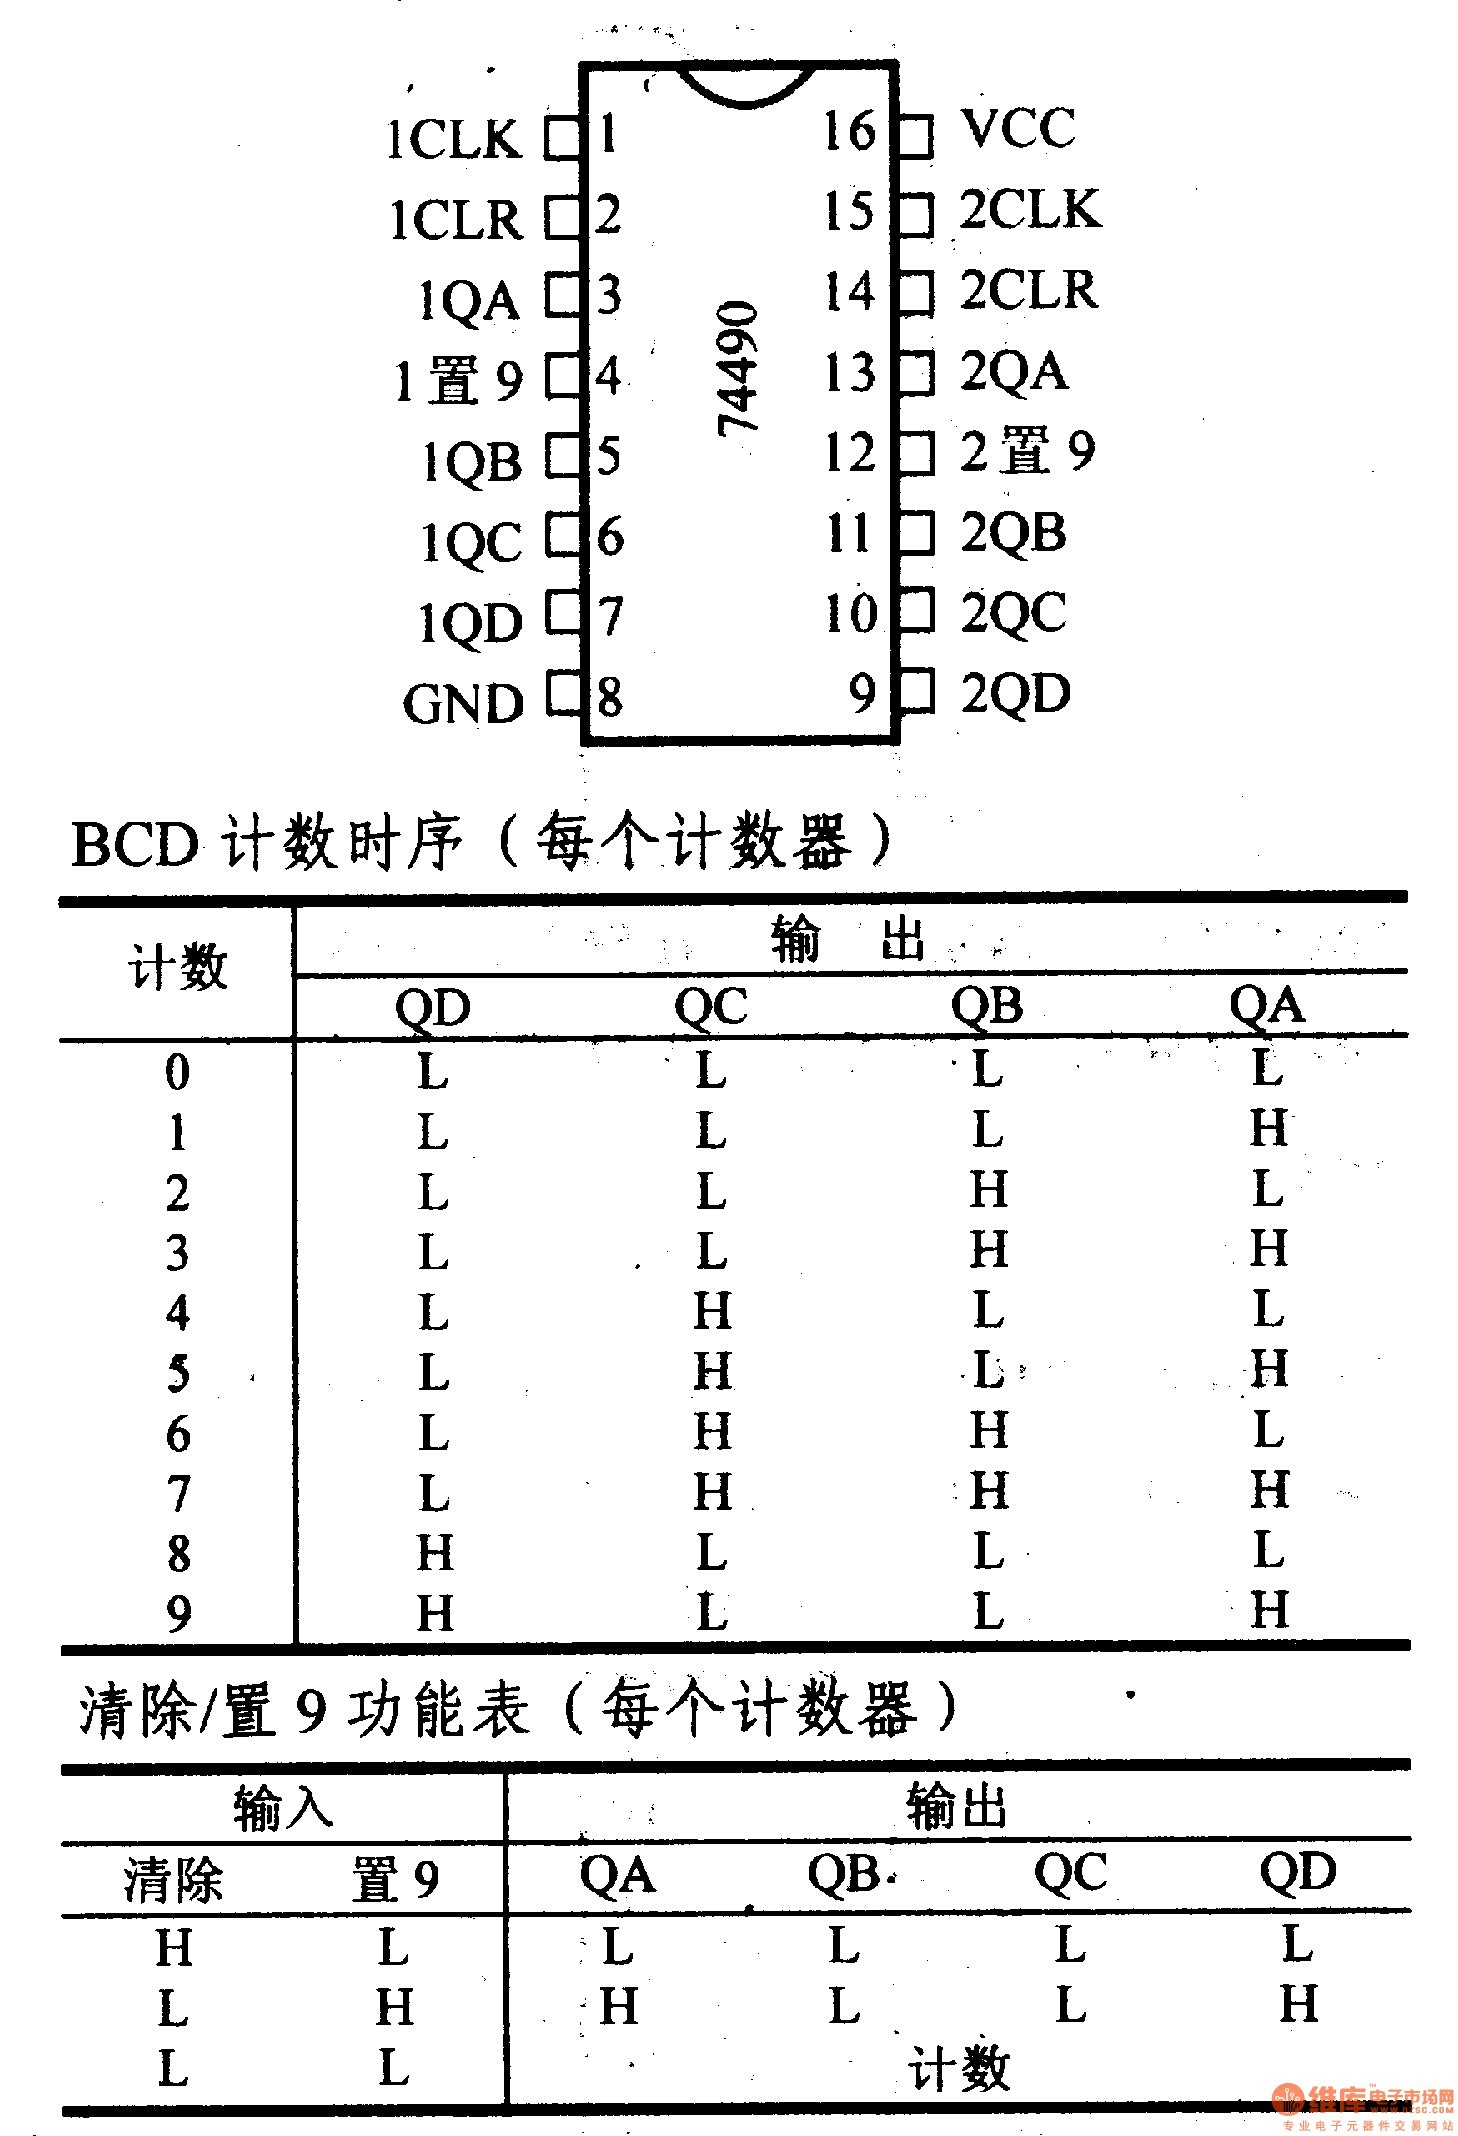 Led Driver Wiring Diagram Mark 10v Dimming Ballasts 7 Ballast Circuit Fresh Decade Counter Of